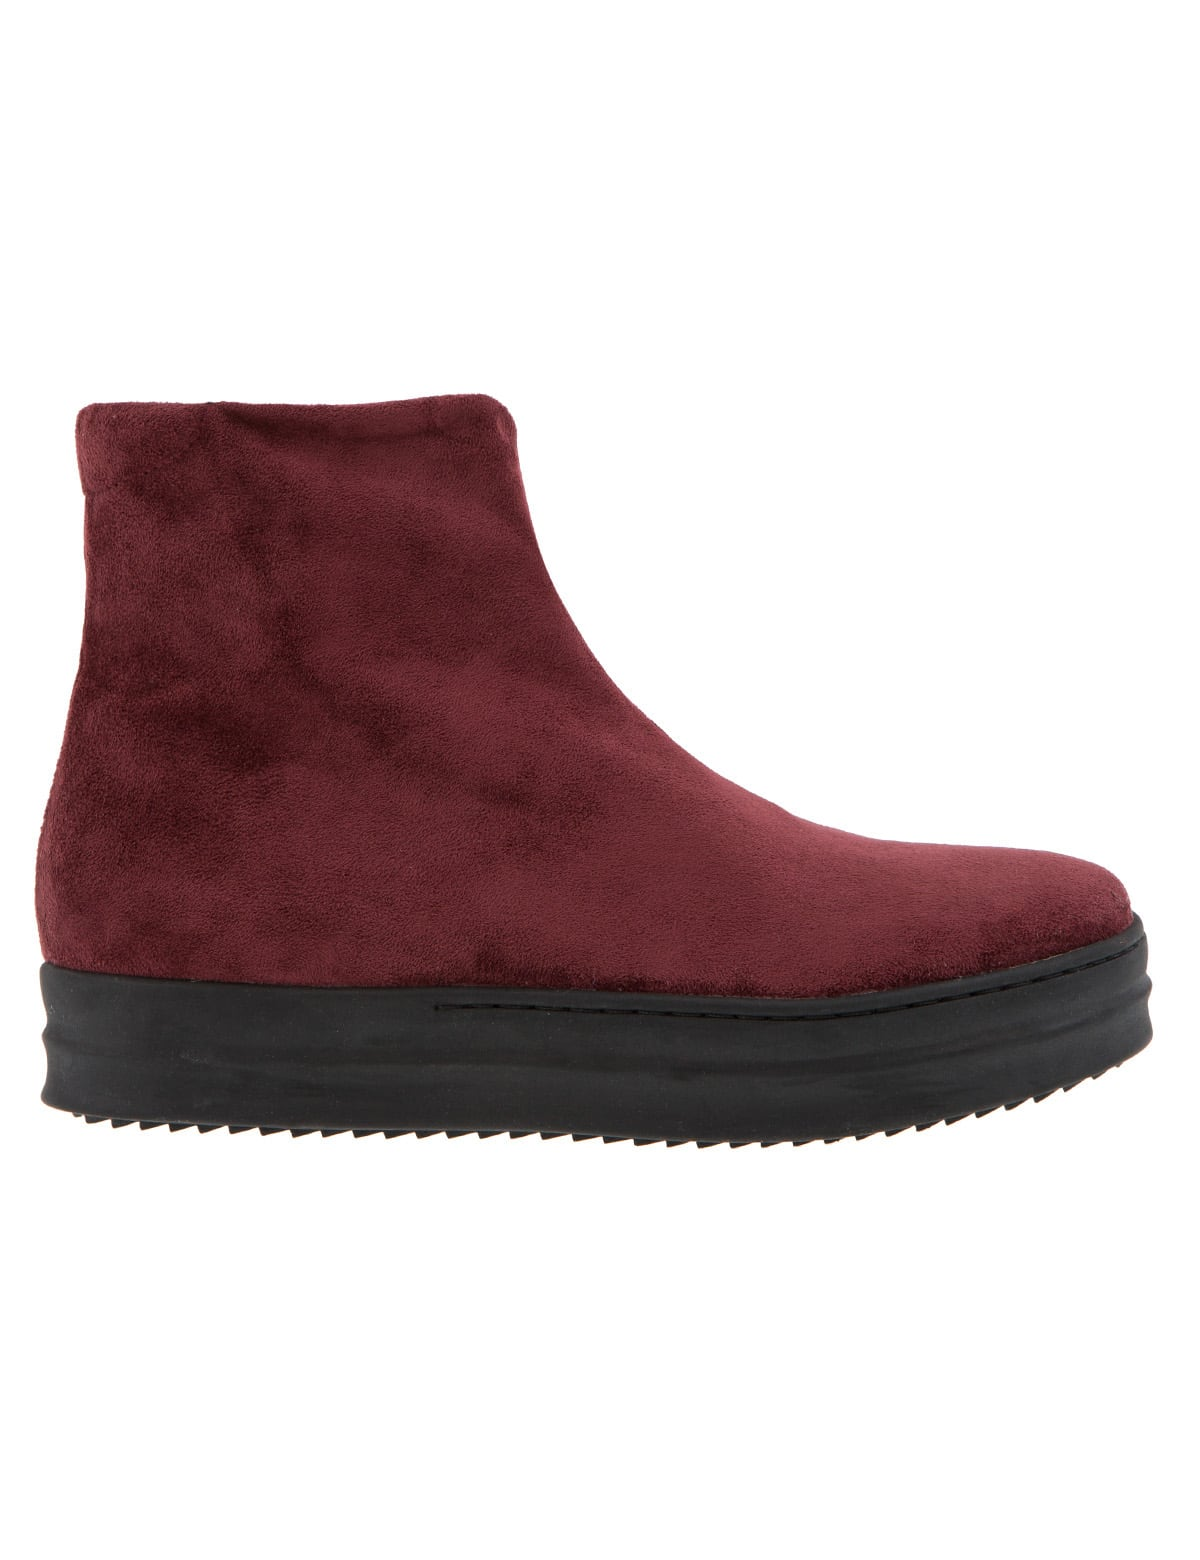 Lara Bordo Suede mrs fred   sneakers